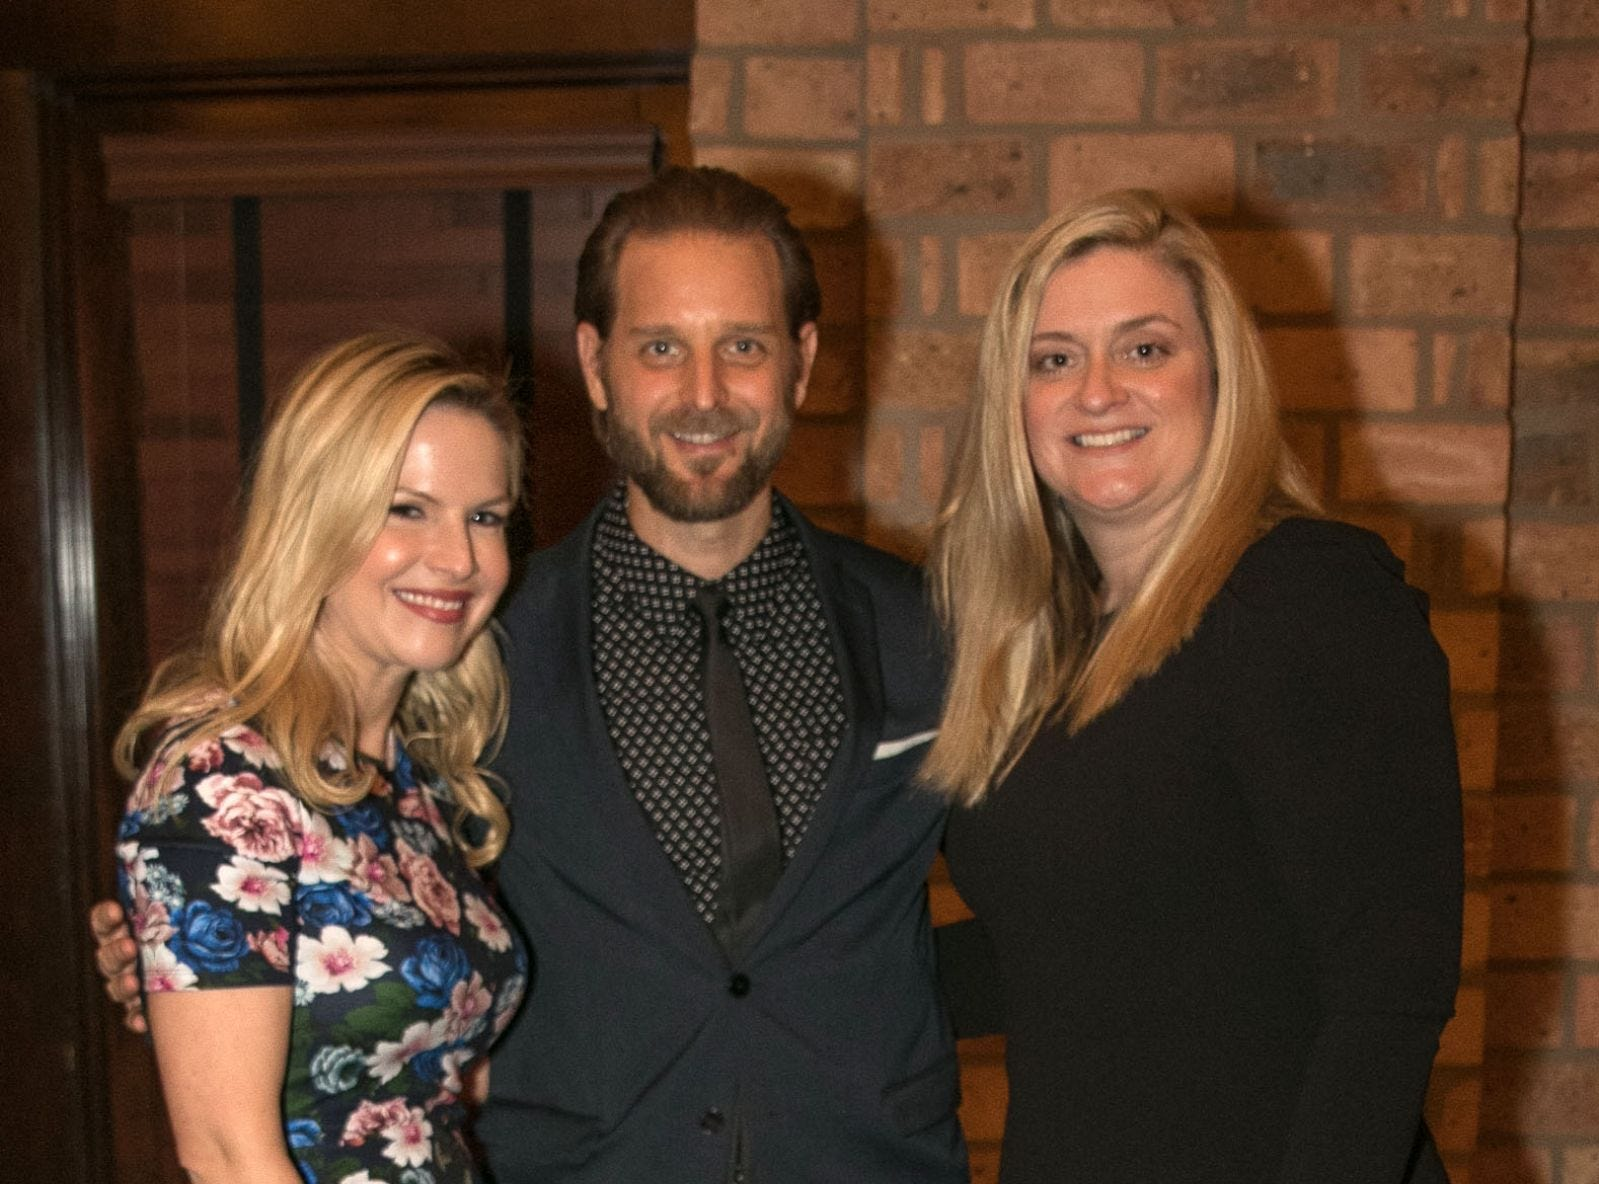 Sonja Cullaro, Dan Peros, Christina Gibbons. Christina Gibbons of Special Properties held a cocktail reception to acknowledge her clients at Roots Steakhouse in Ridgewood. 02/07/2019